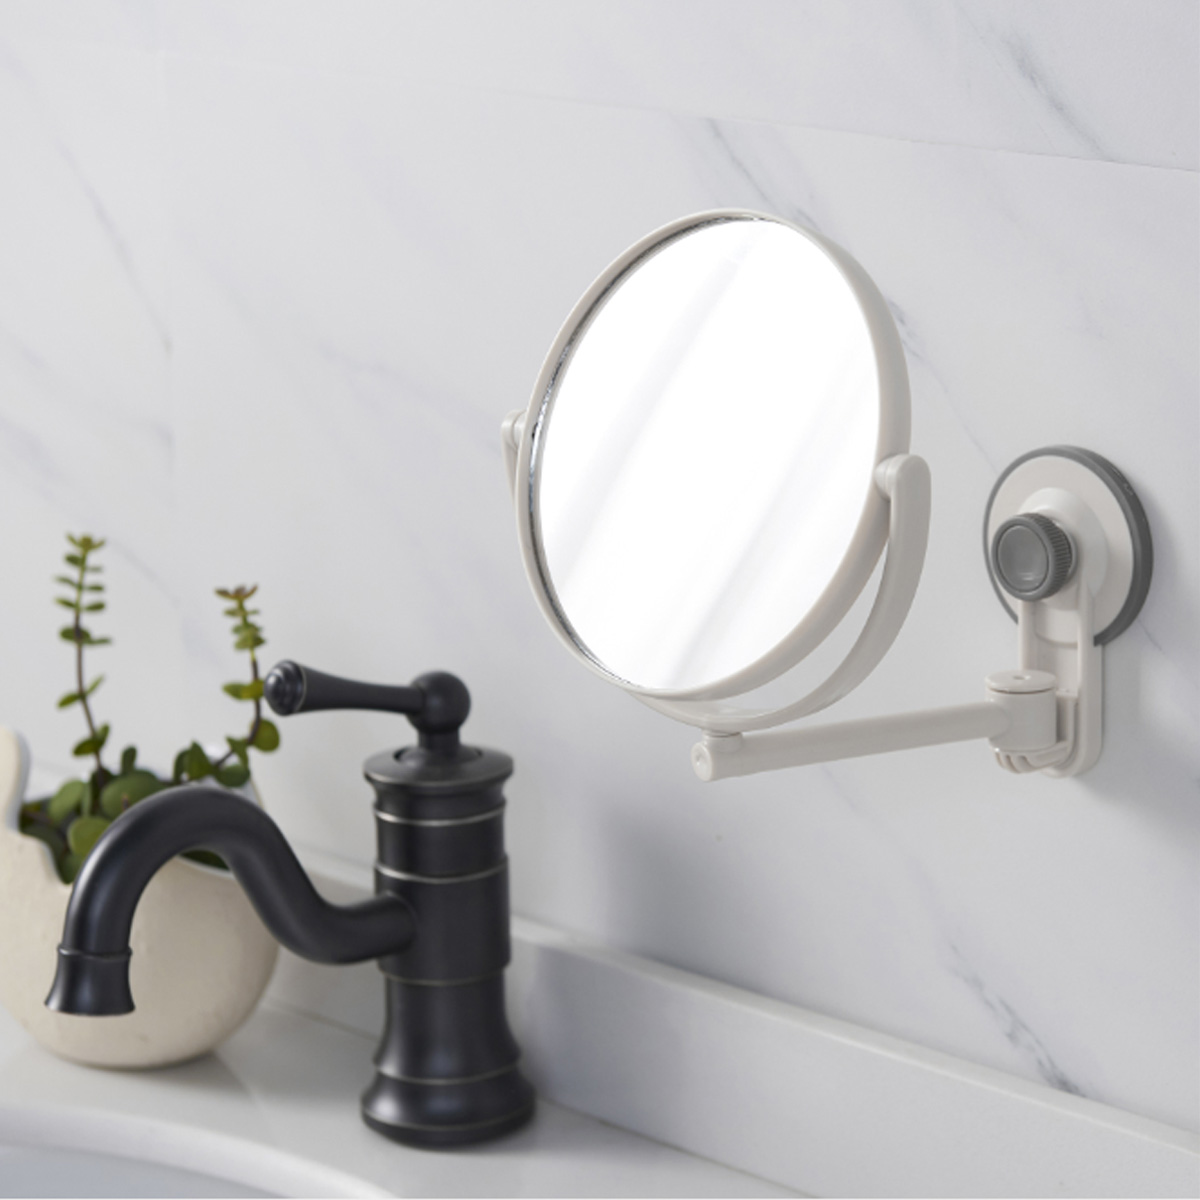 Round Wall Mirror Cosmetic Mirror Double-sided 1:3 Magnifying Mirrors Bathroom Makeup 360 Angle Swivel Mirrors